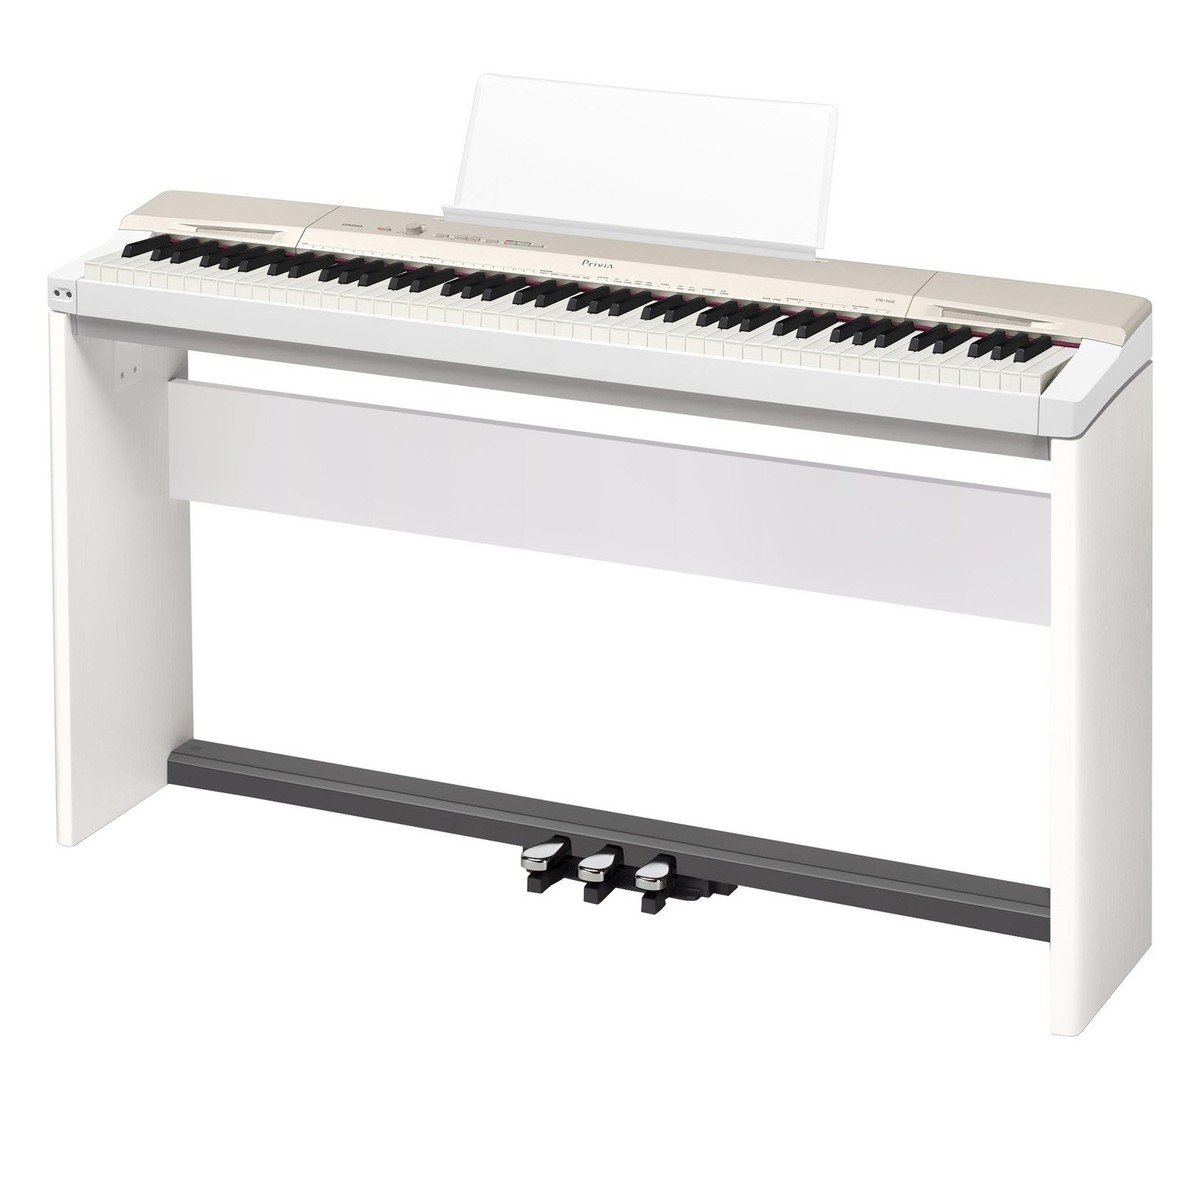 casio privia px 160 digital piano package white at gear4music. Black Bedroom Furniture Sets. Home Design Ideas